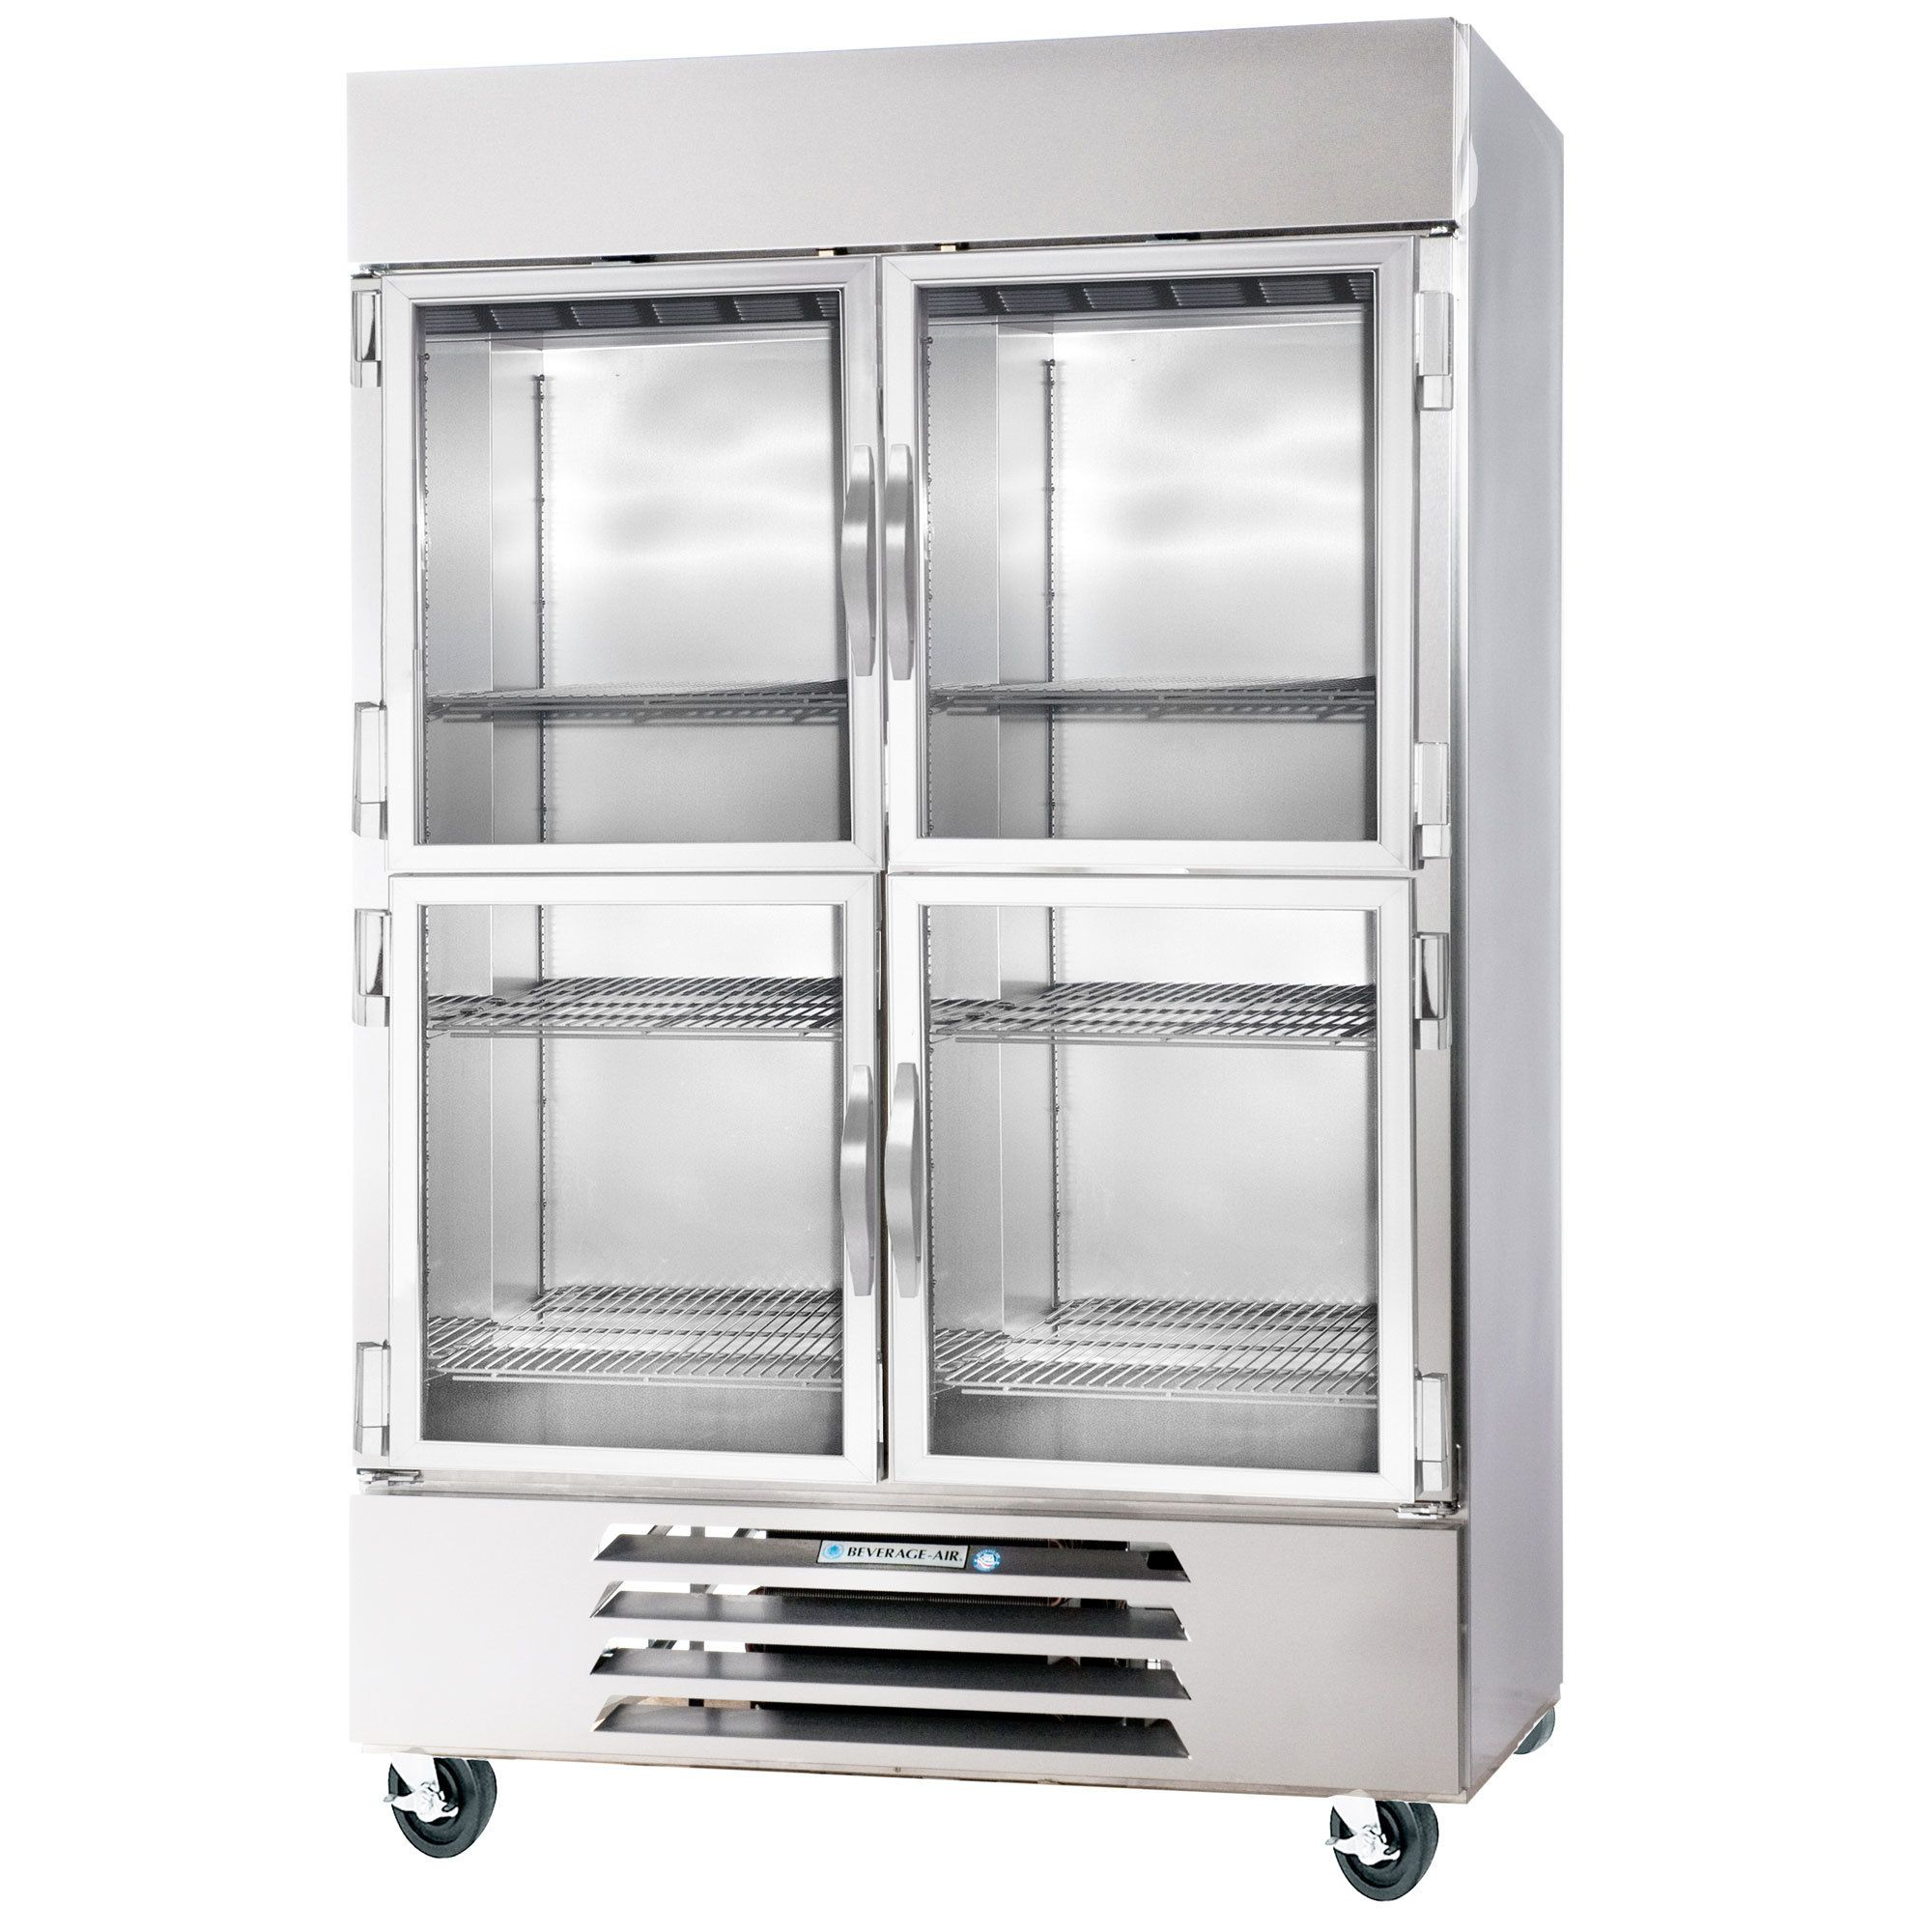 Keeping refrigerators in good working order to prevent